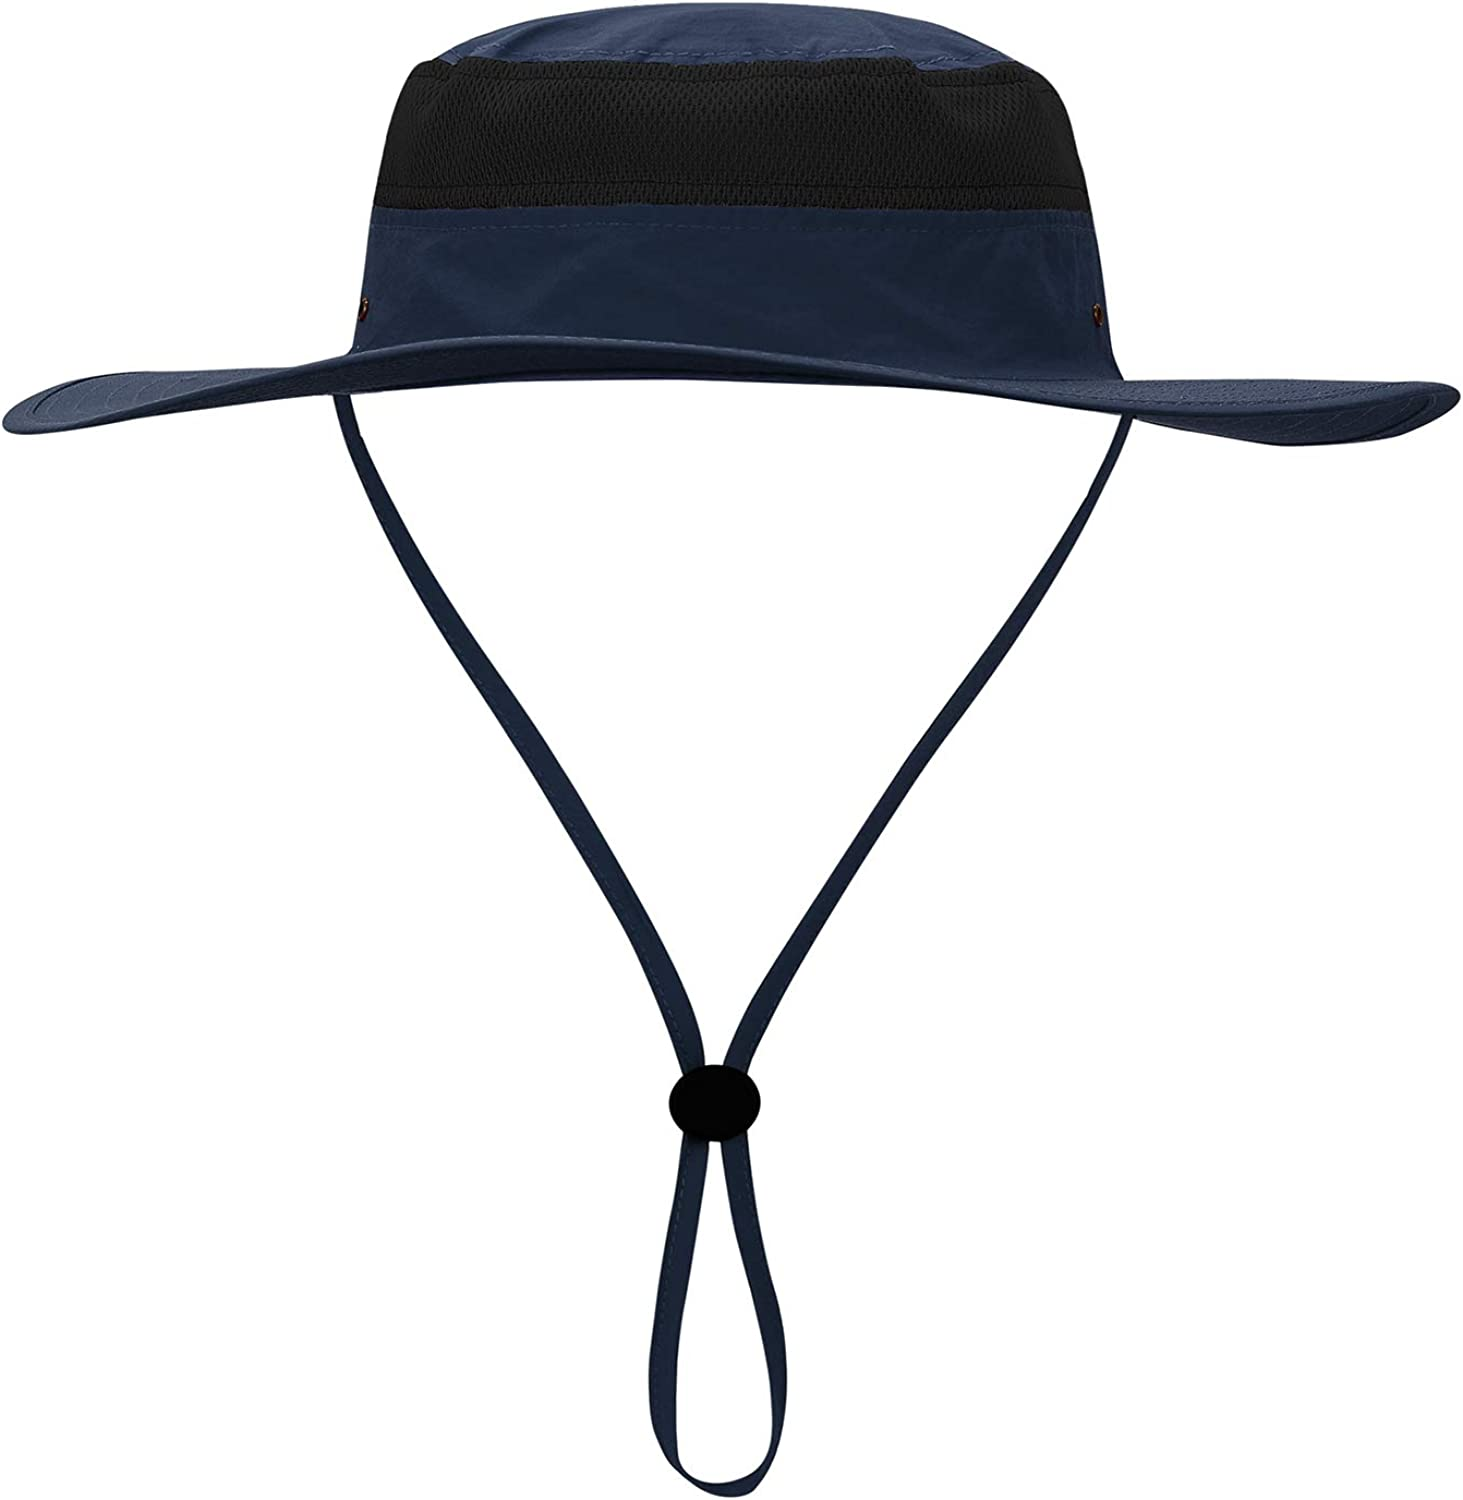 Many popular brands Fishing Hats for Women Beach Men 67% OFF of fixed price Wide UV Protection Sun